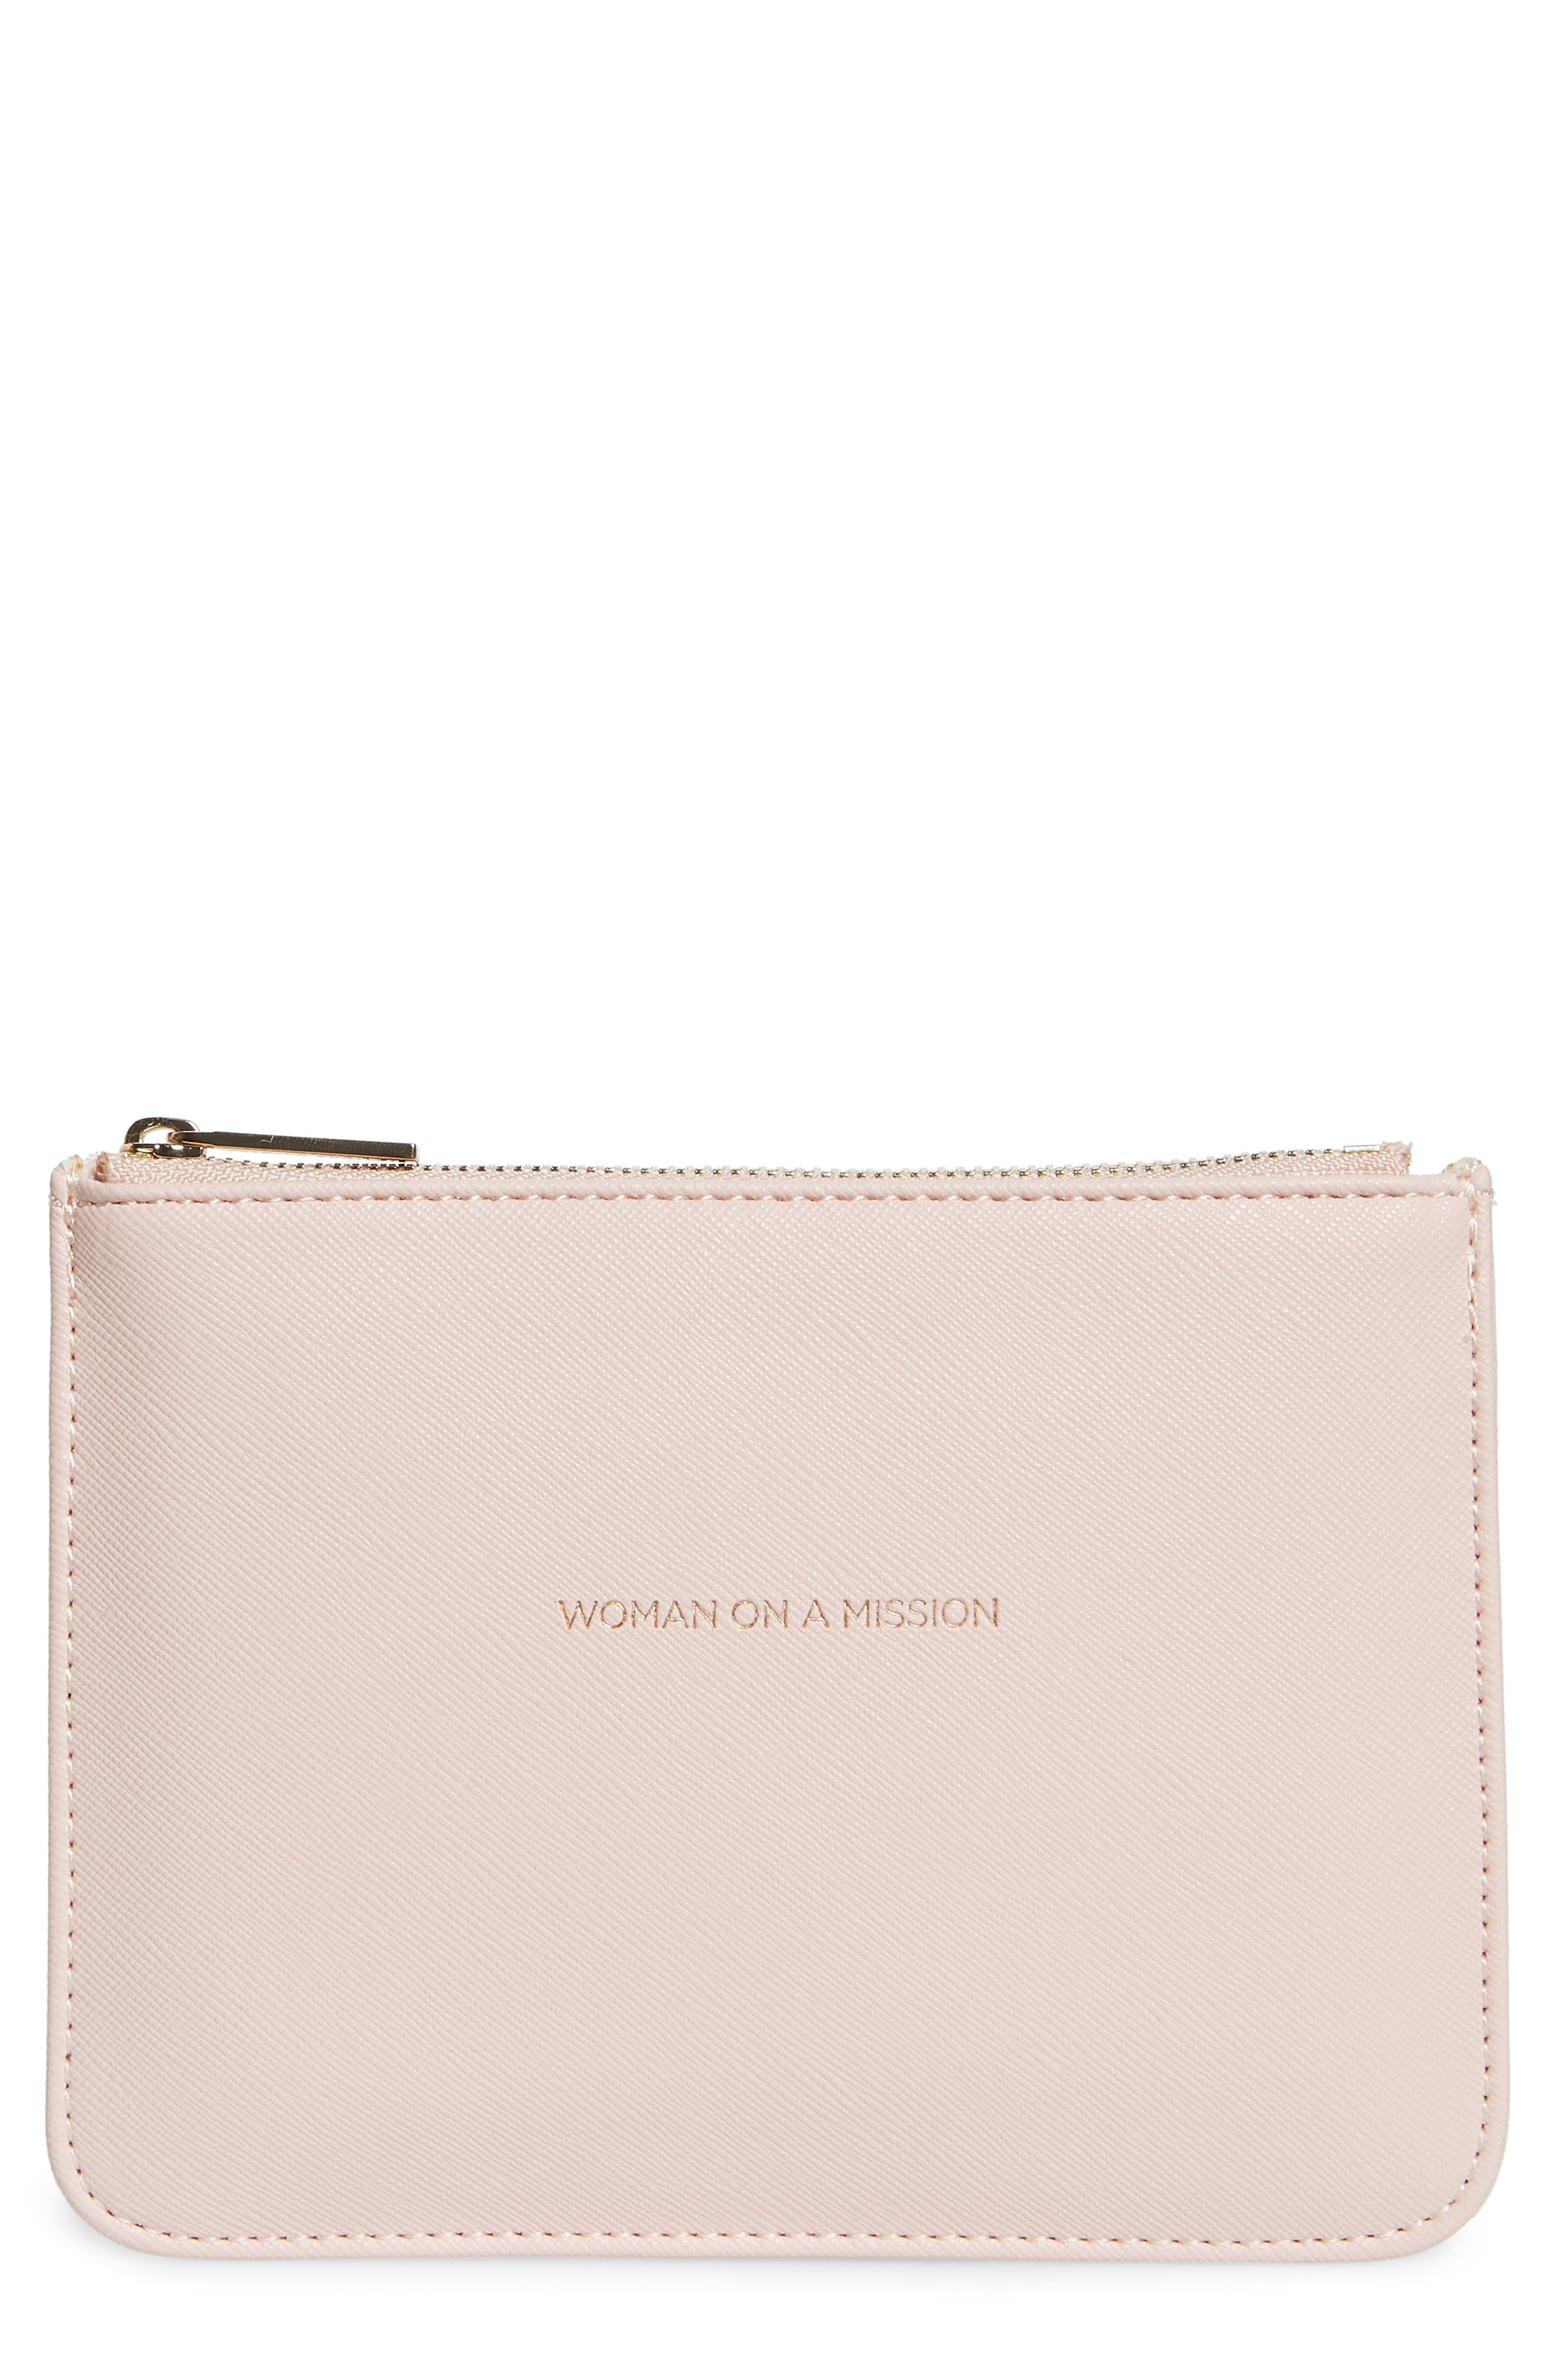 Small Faux Leather Zip Pouch,                             Main thumbnail 1, color,                             BLUSH - WOMAN ON A MISSION